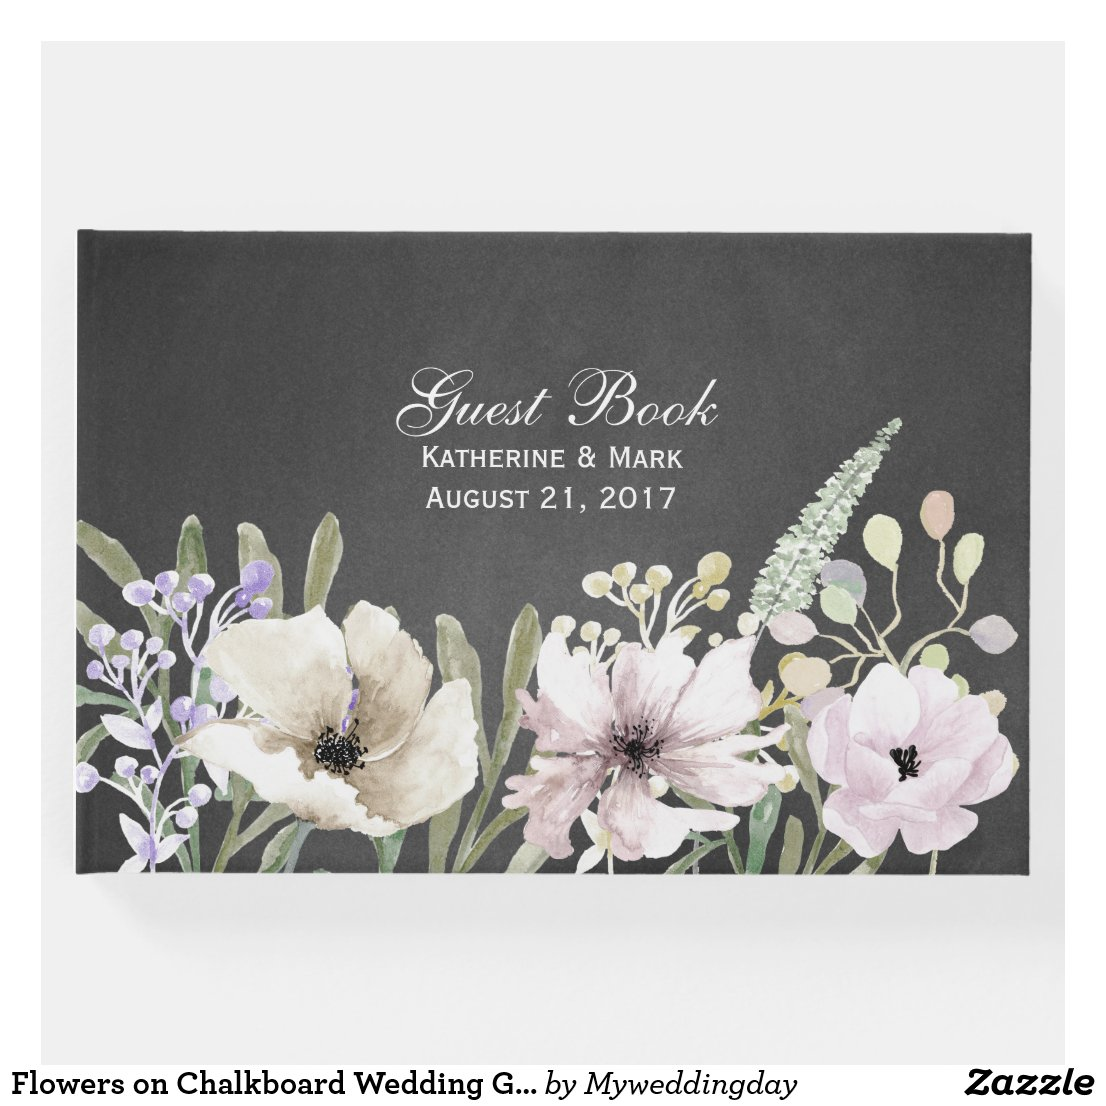 Flowers on Chalkboard Wedding Guest Book